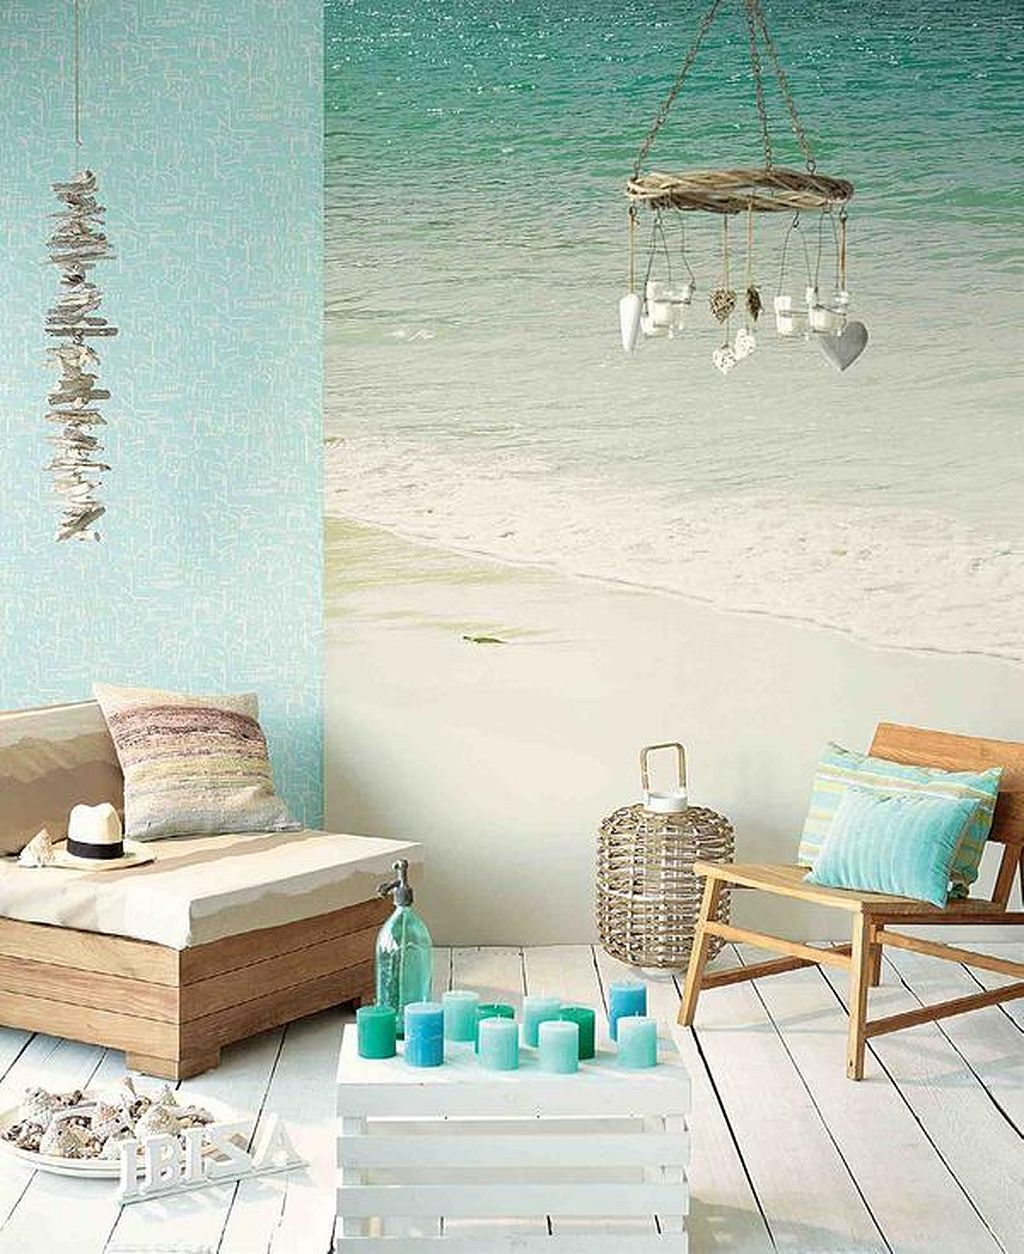 20 Breeze Beach Diy Home Decorating Ideas With Images Beach